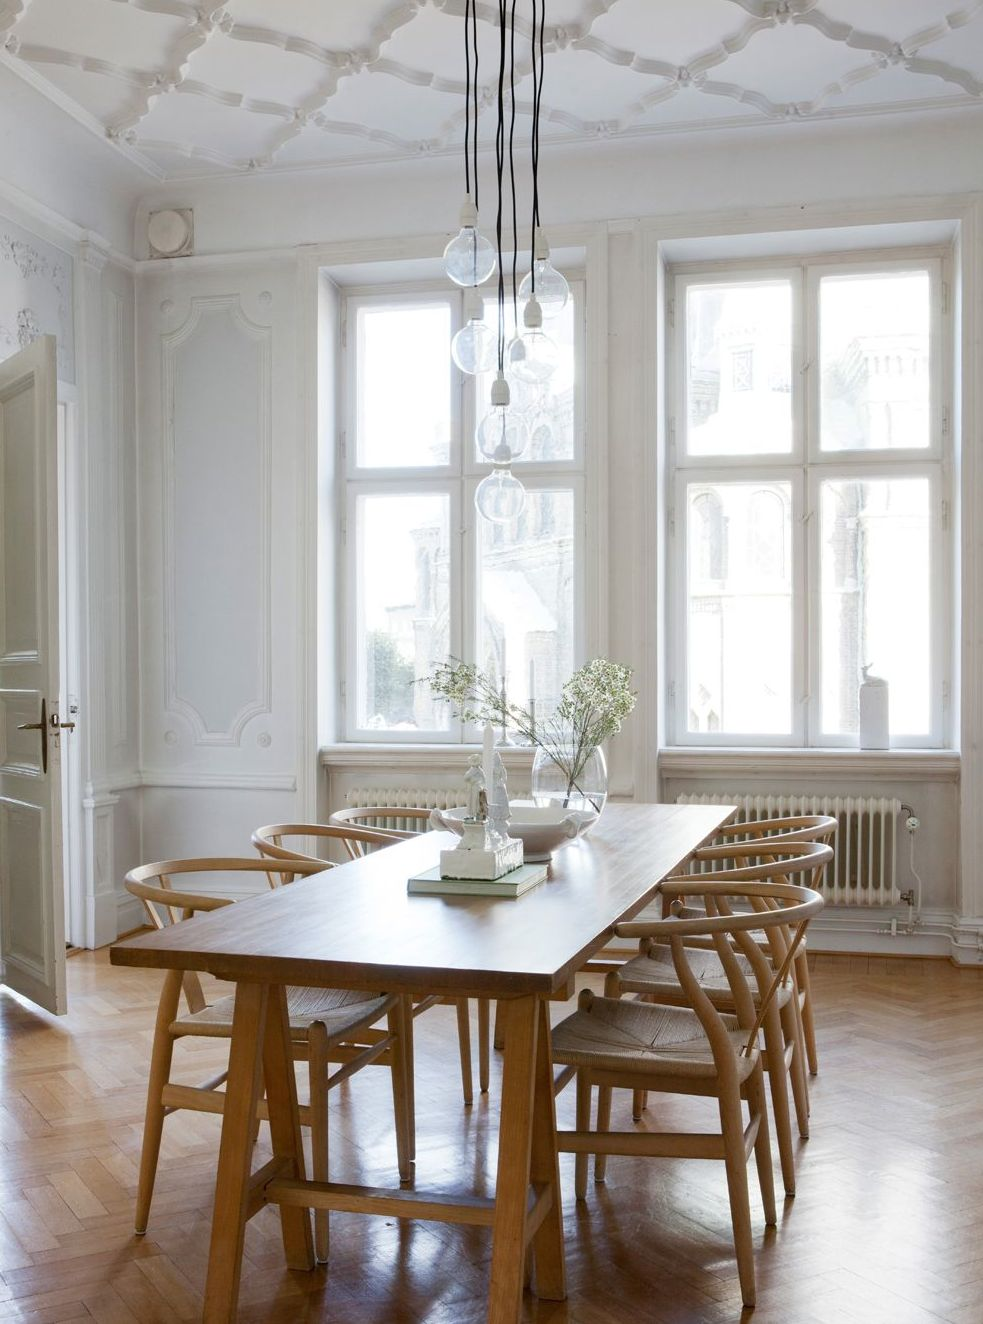 Beautiful classic apartment - via Coco Lapine Design